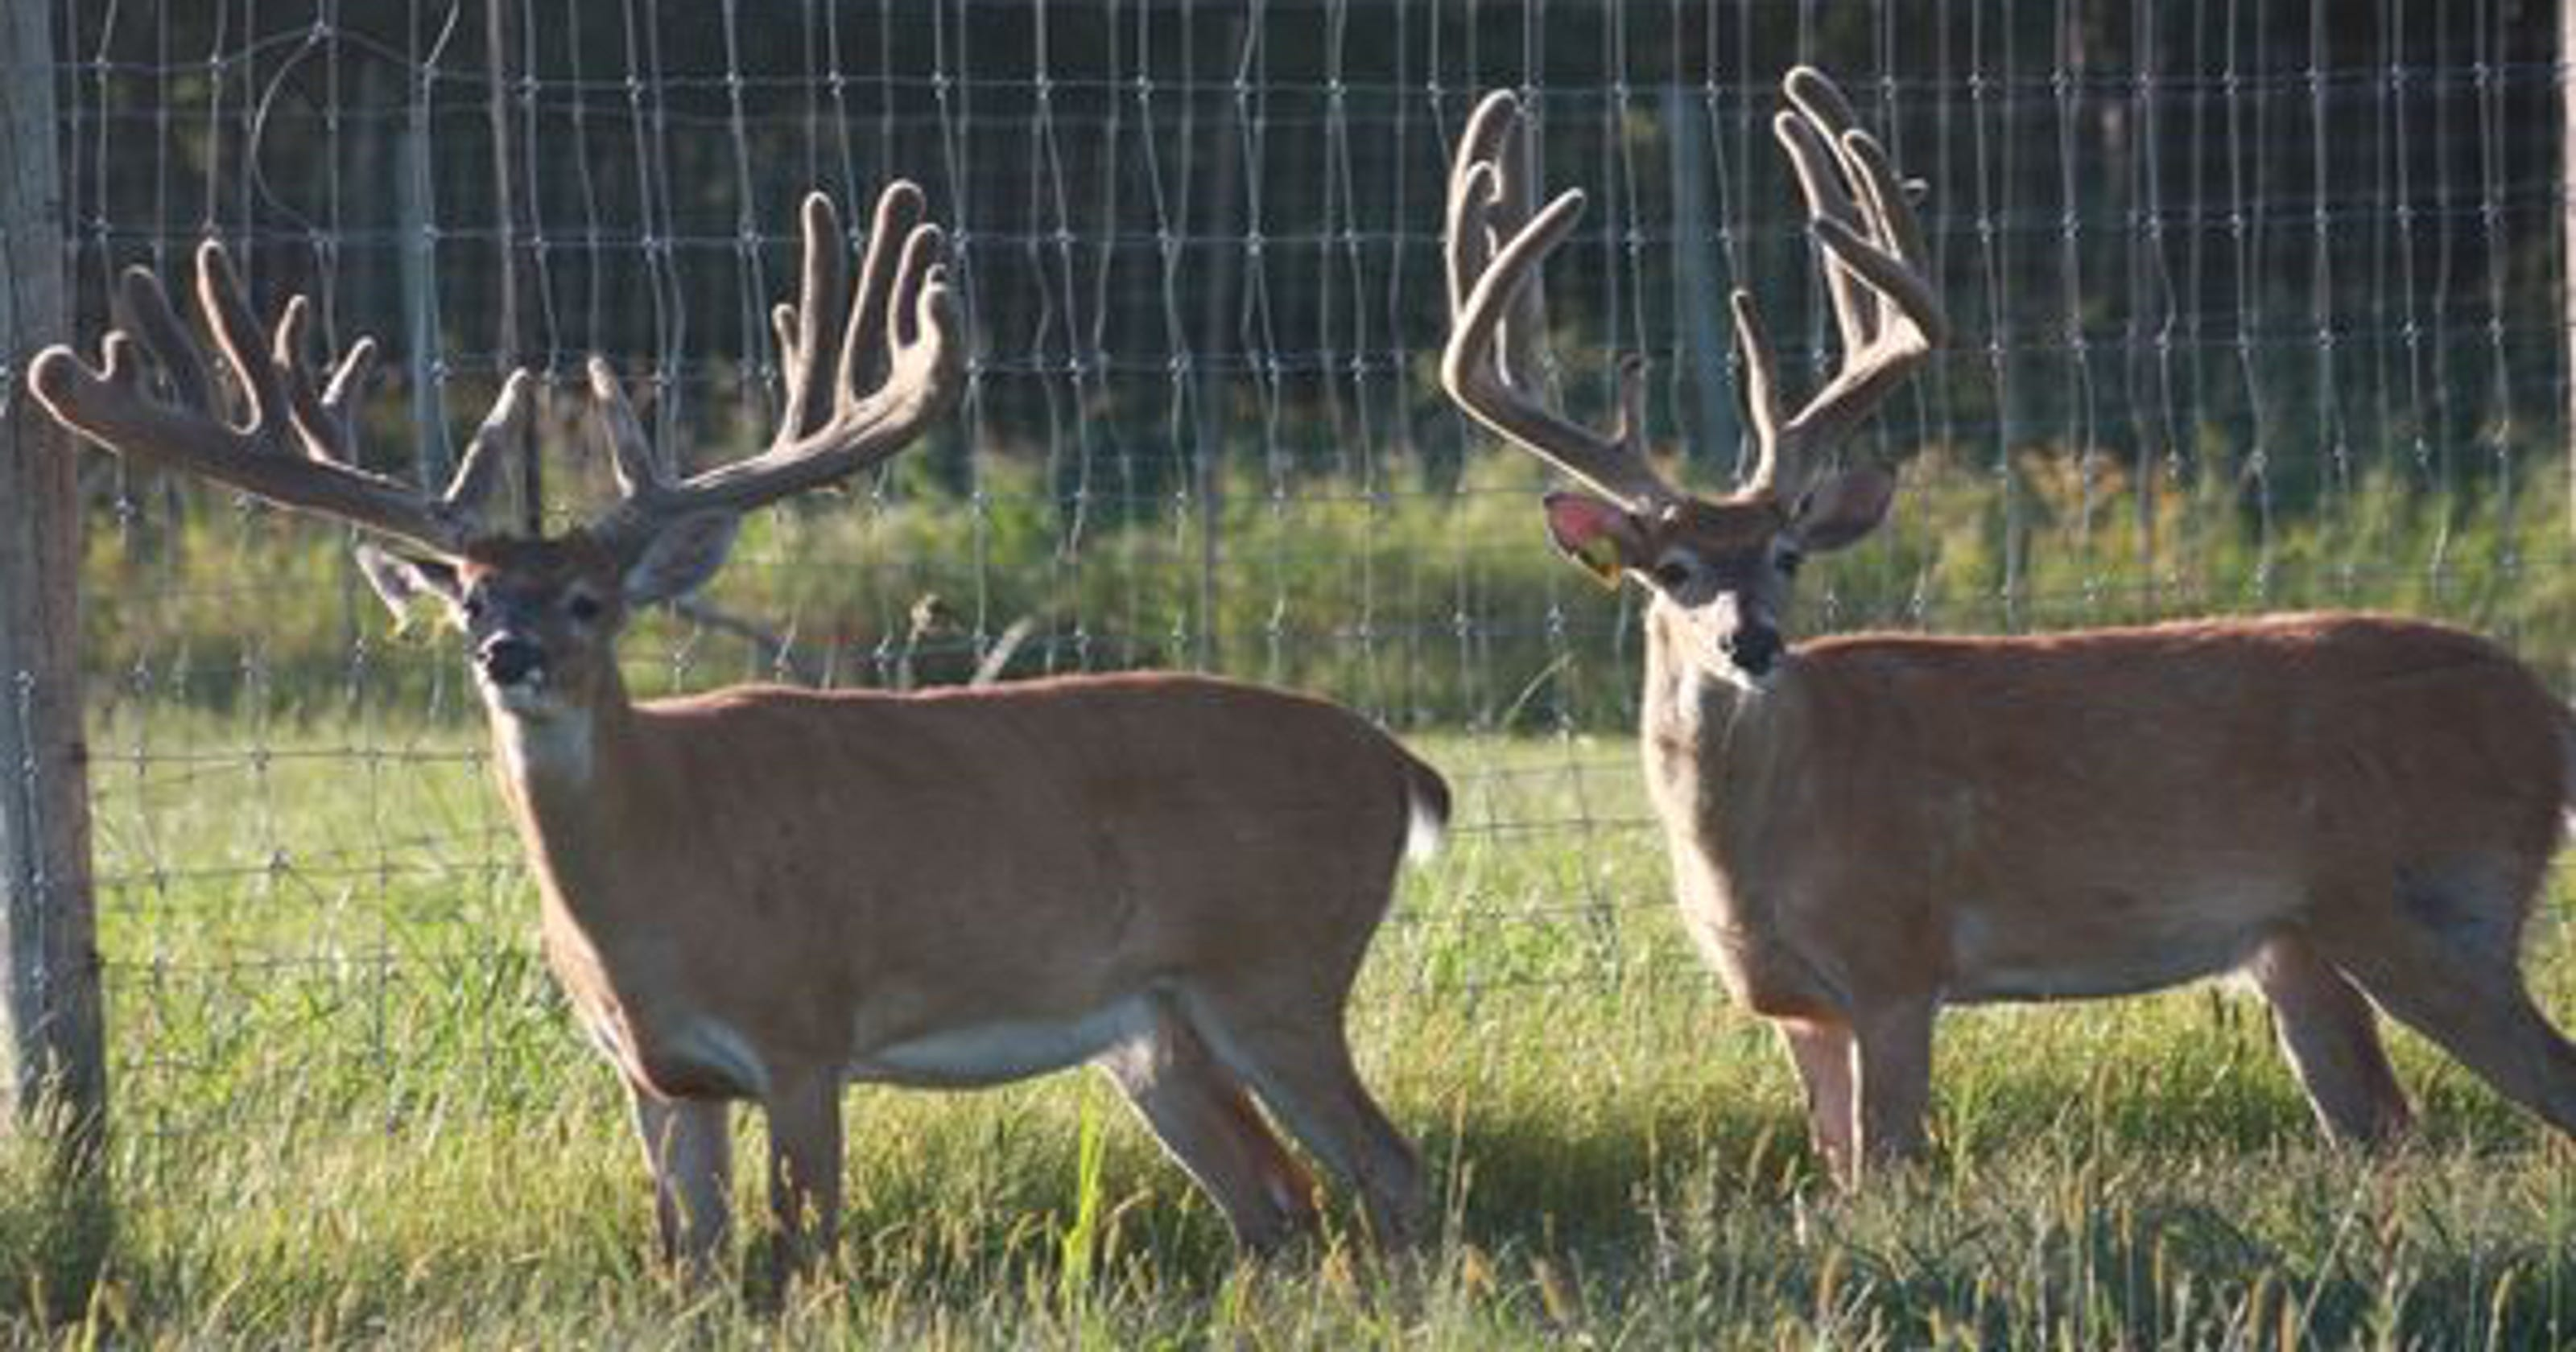 Deer farm owners paid $52,000 for depopulation in Bayfield ...